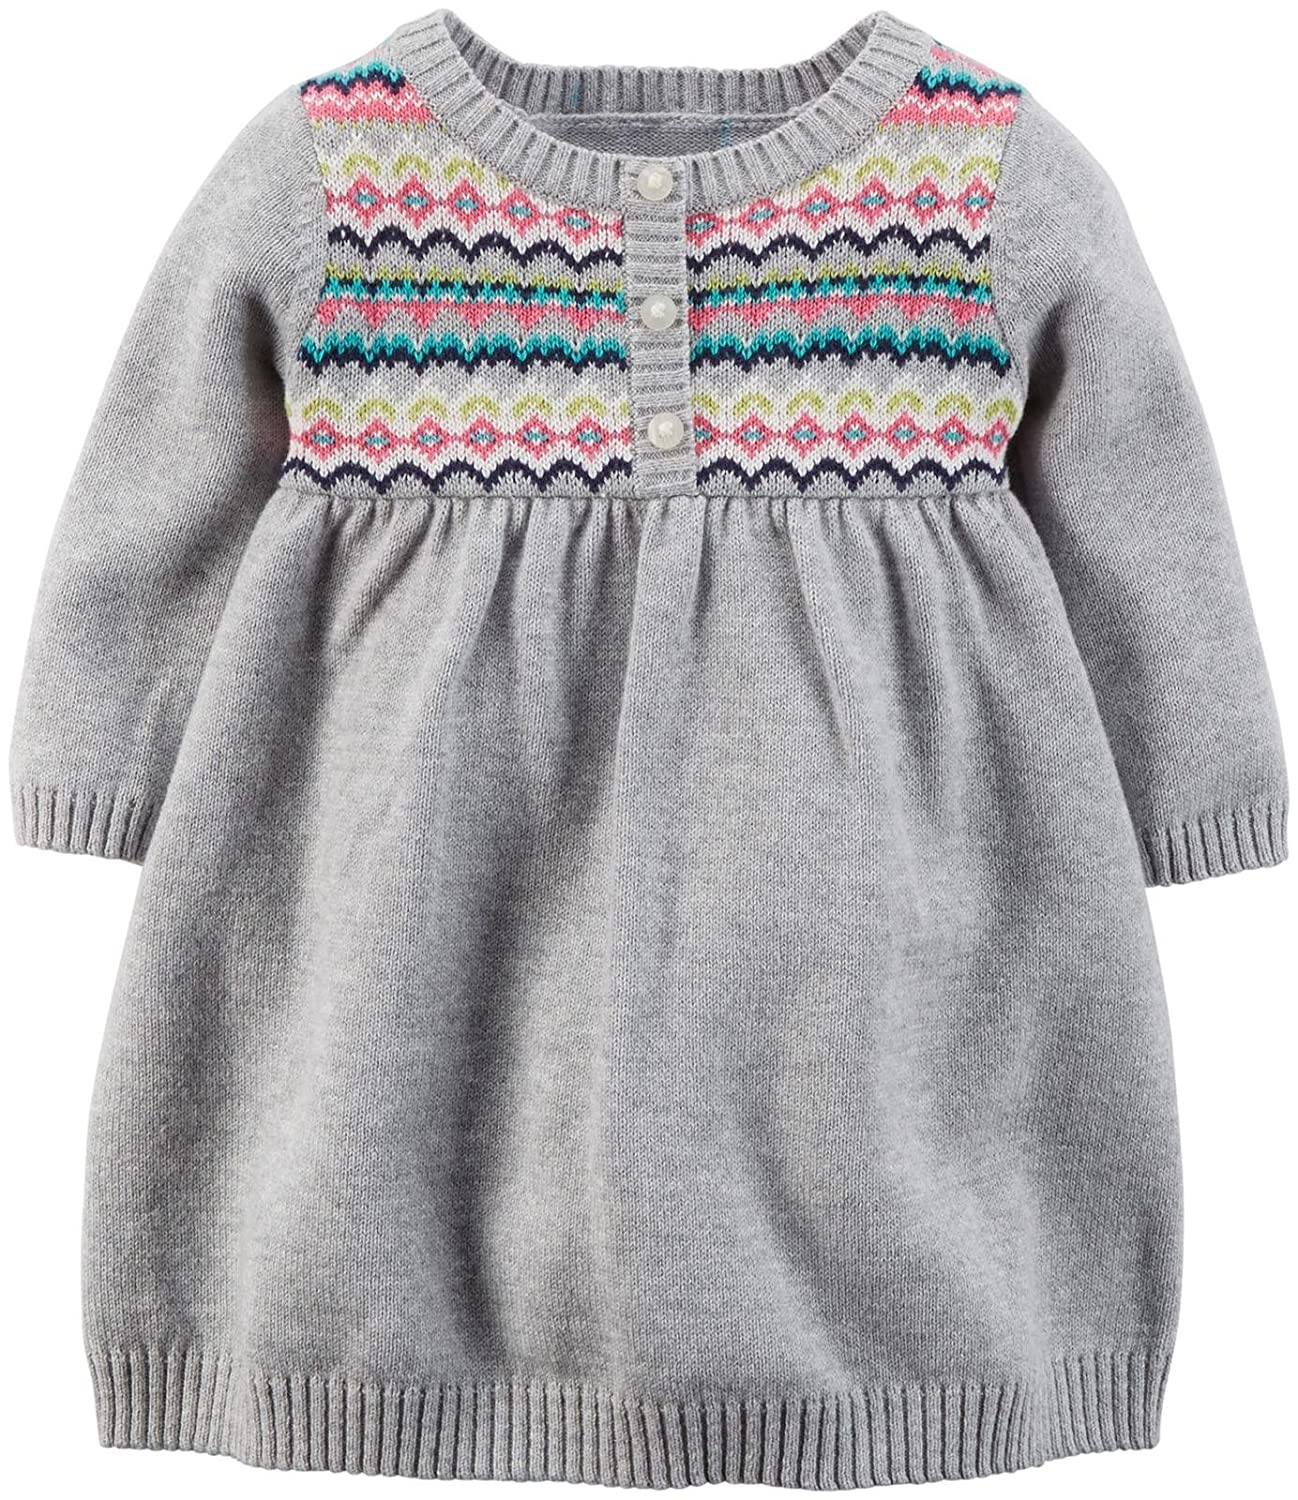 Amazon.com: Carter's Baby Girls' Fairisle Dress (Baby) - Heather ...